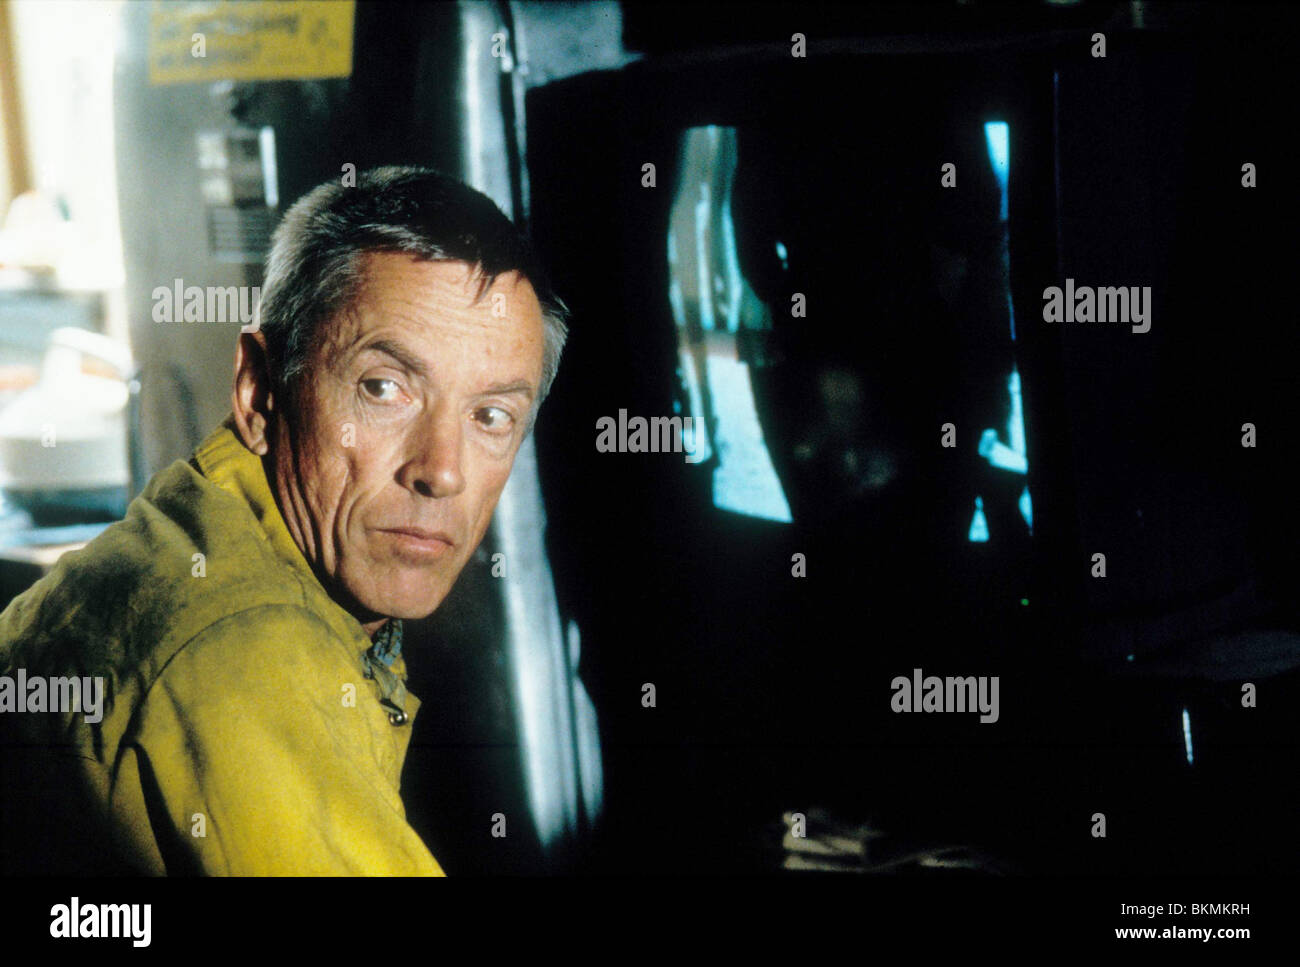 FIRESTORM -1998 SCOTT GLENN - Stock Image